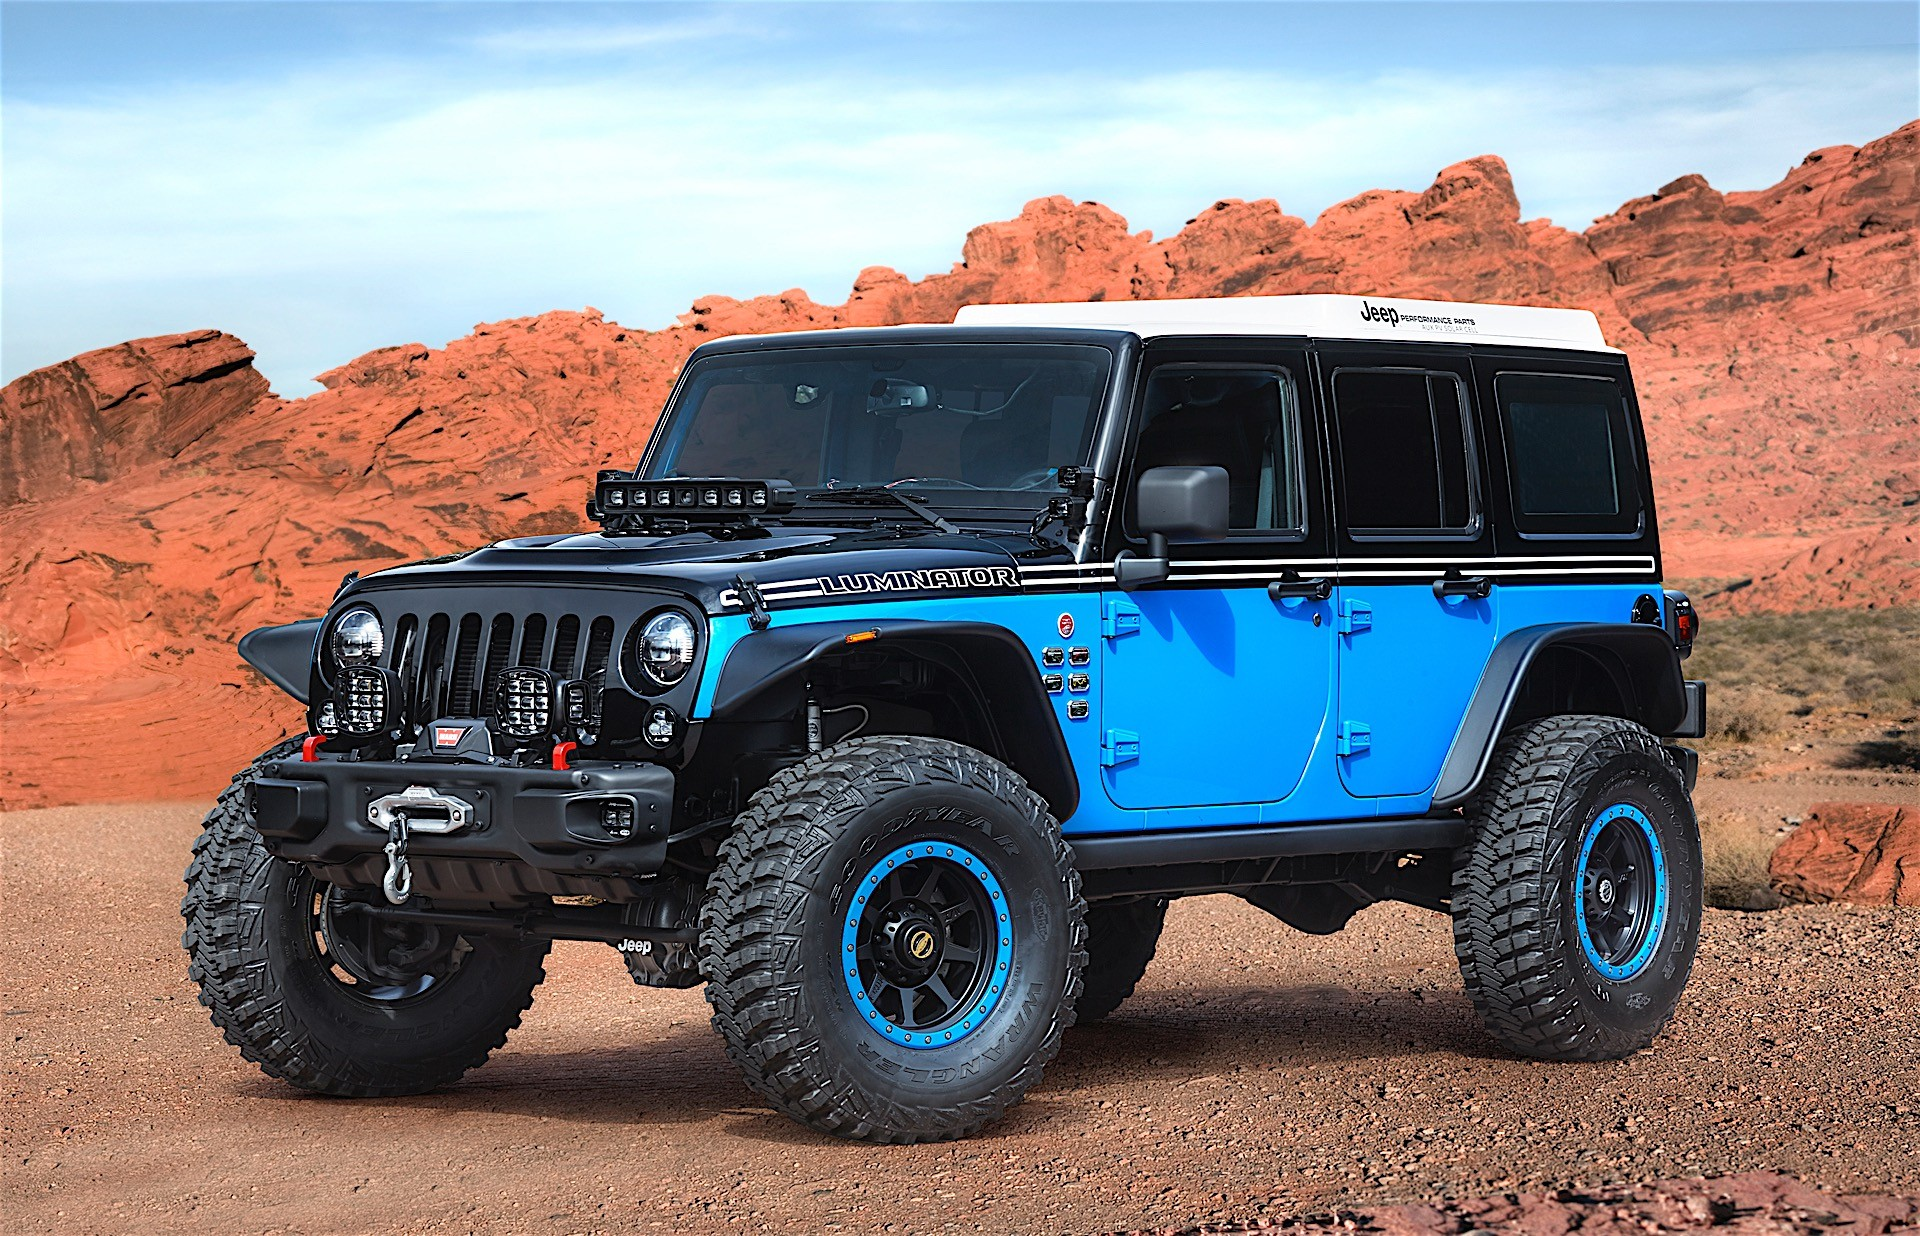 light blue bar with Jeep Unveils Several Concept Vehicles For 2017 Moab Easter Jeep Safari 116595 on Lego Syringe likewise StarfishSoap additionally Ashley Benson Cosies Boyfriend Ryan Good Date Sports Ensemble Days Earlier in addition Altstaedter Ring besides Talk Nerdy.